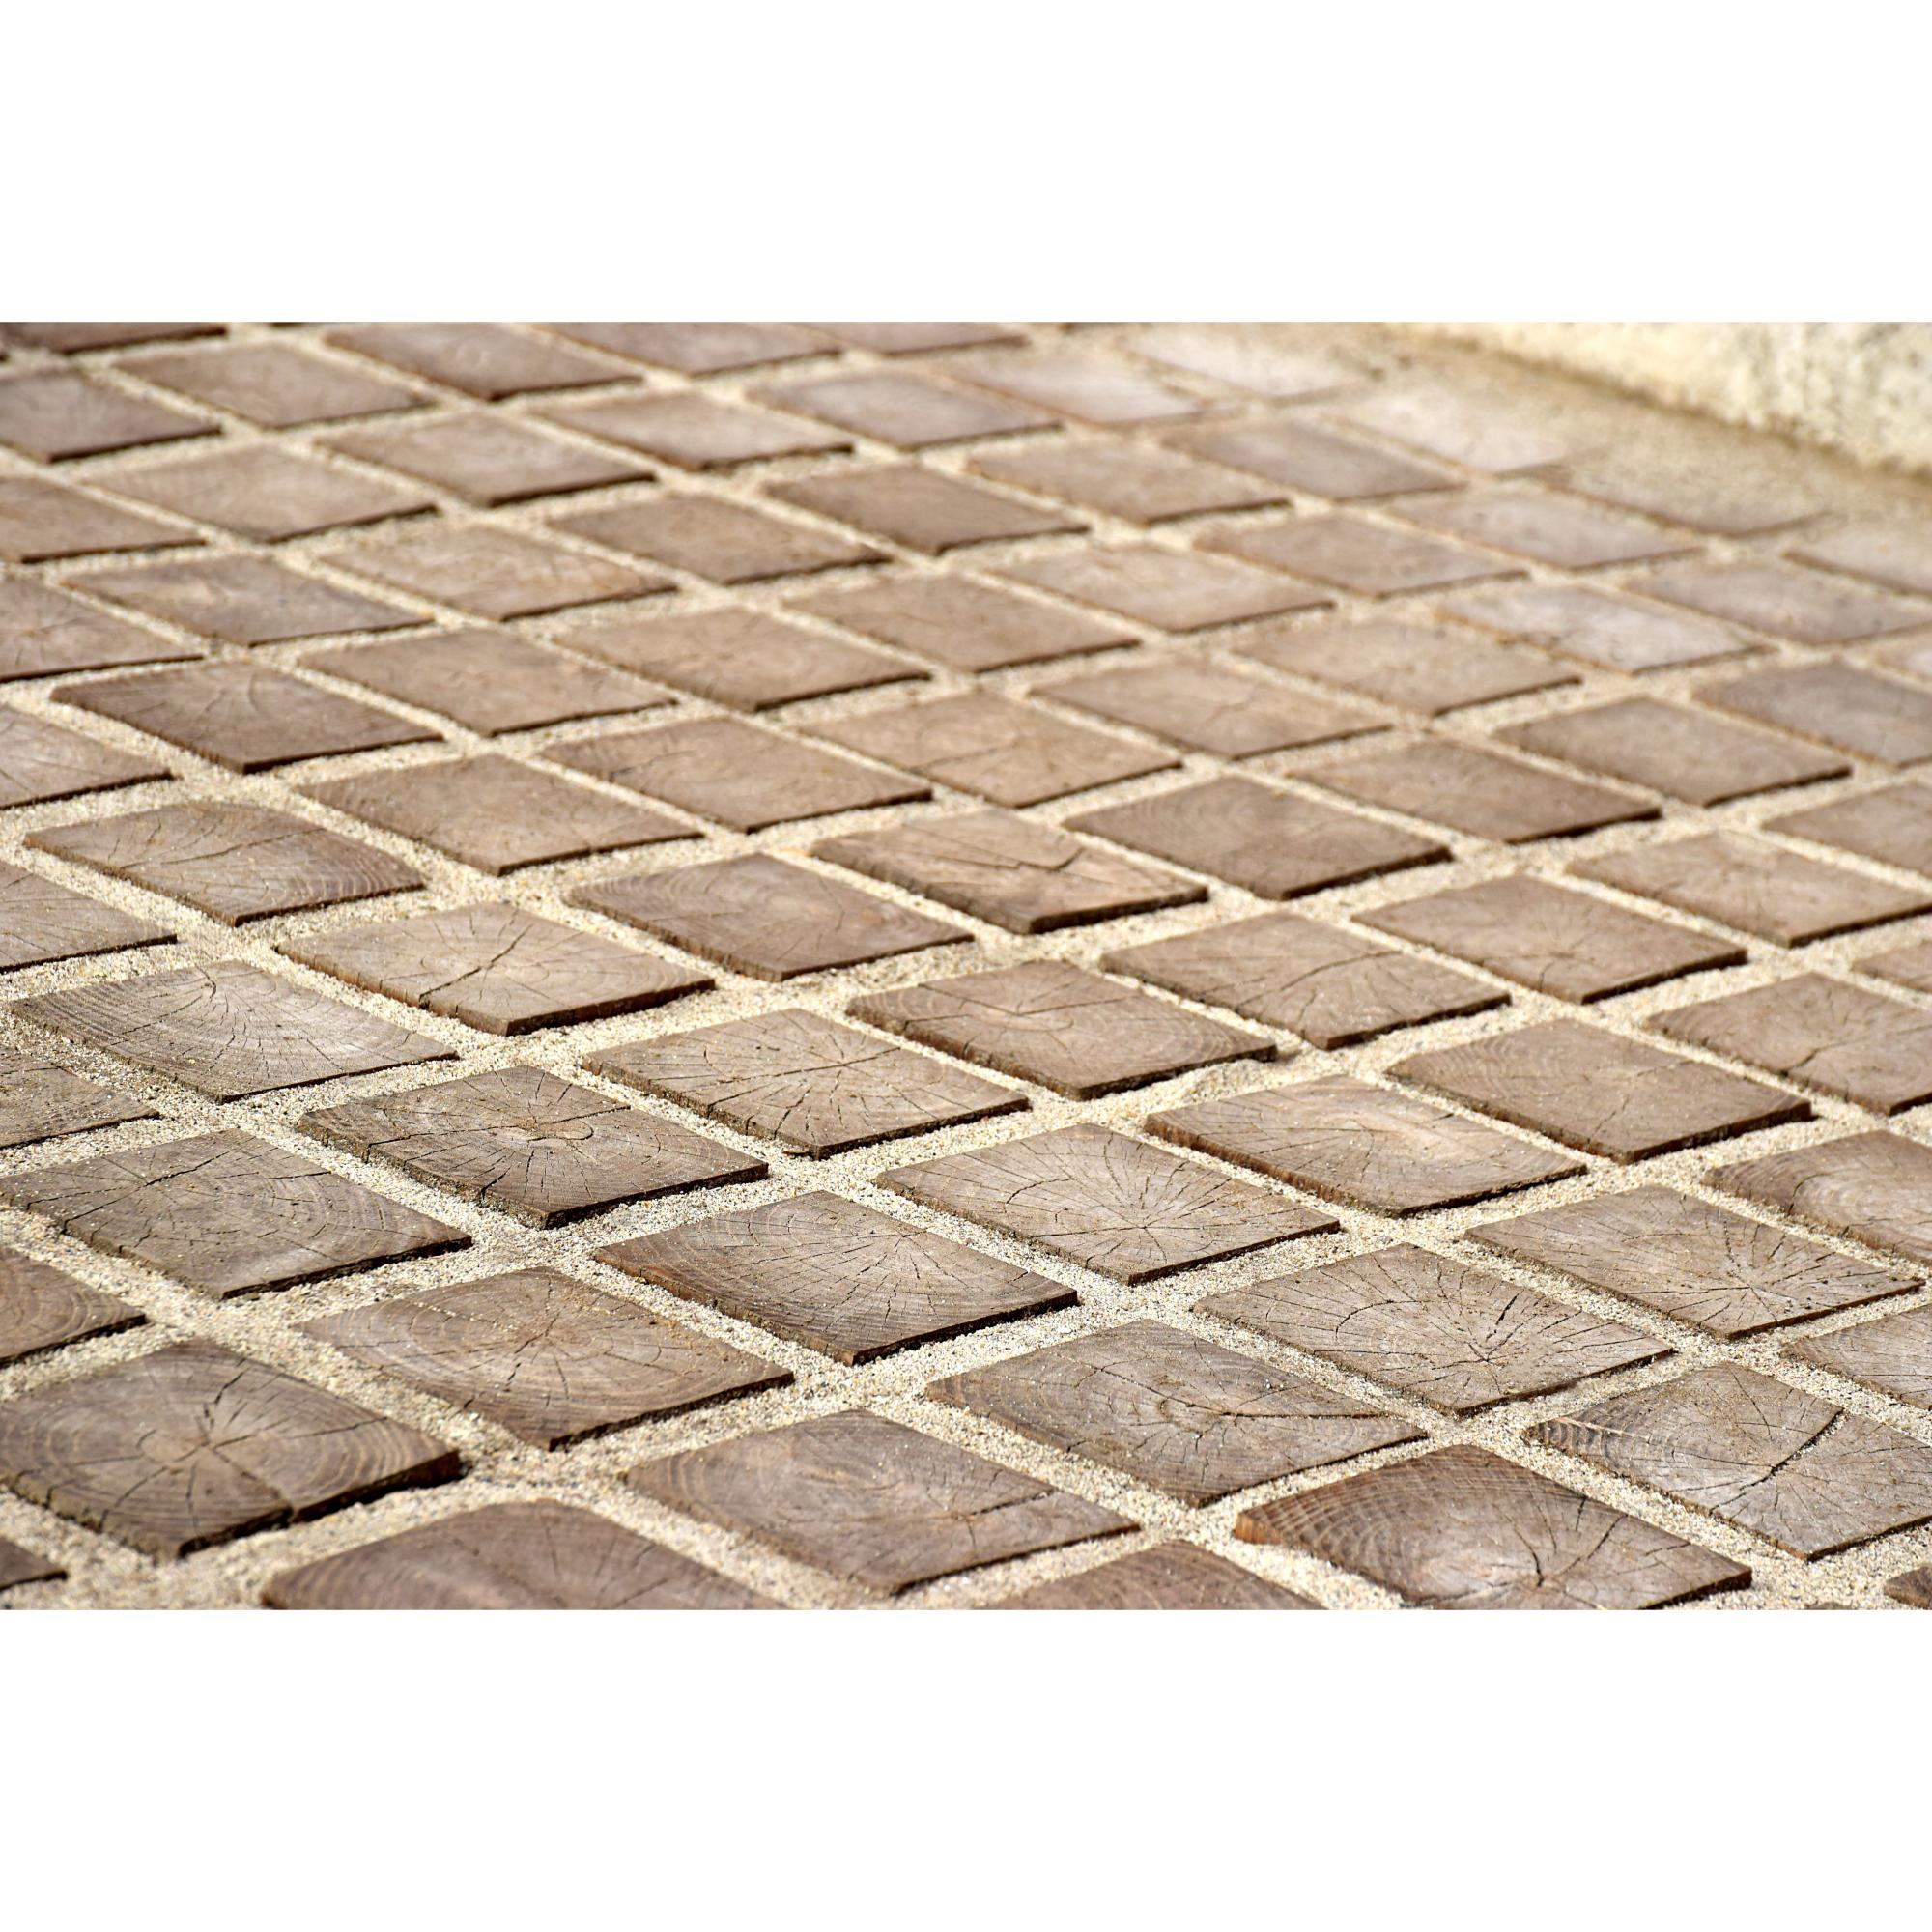 Wooden Porous Pavers